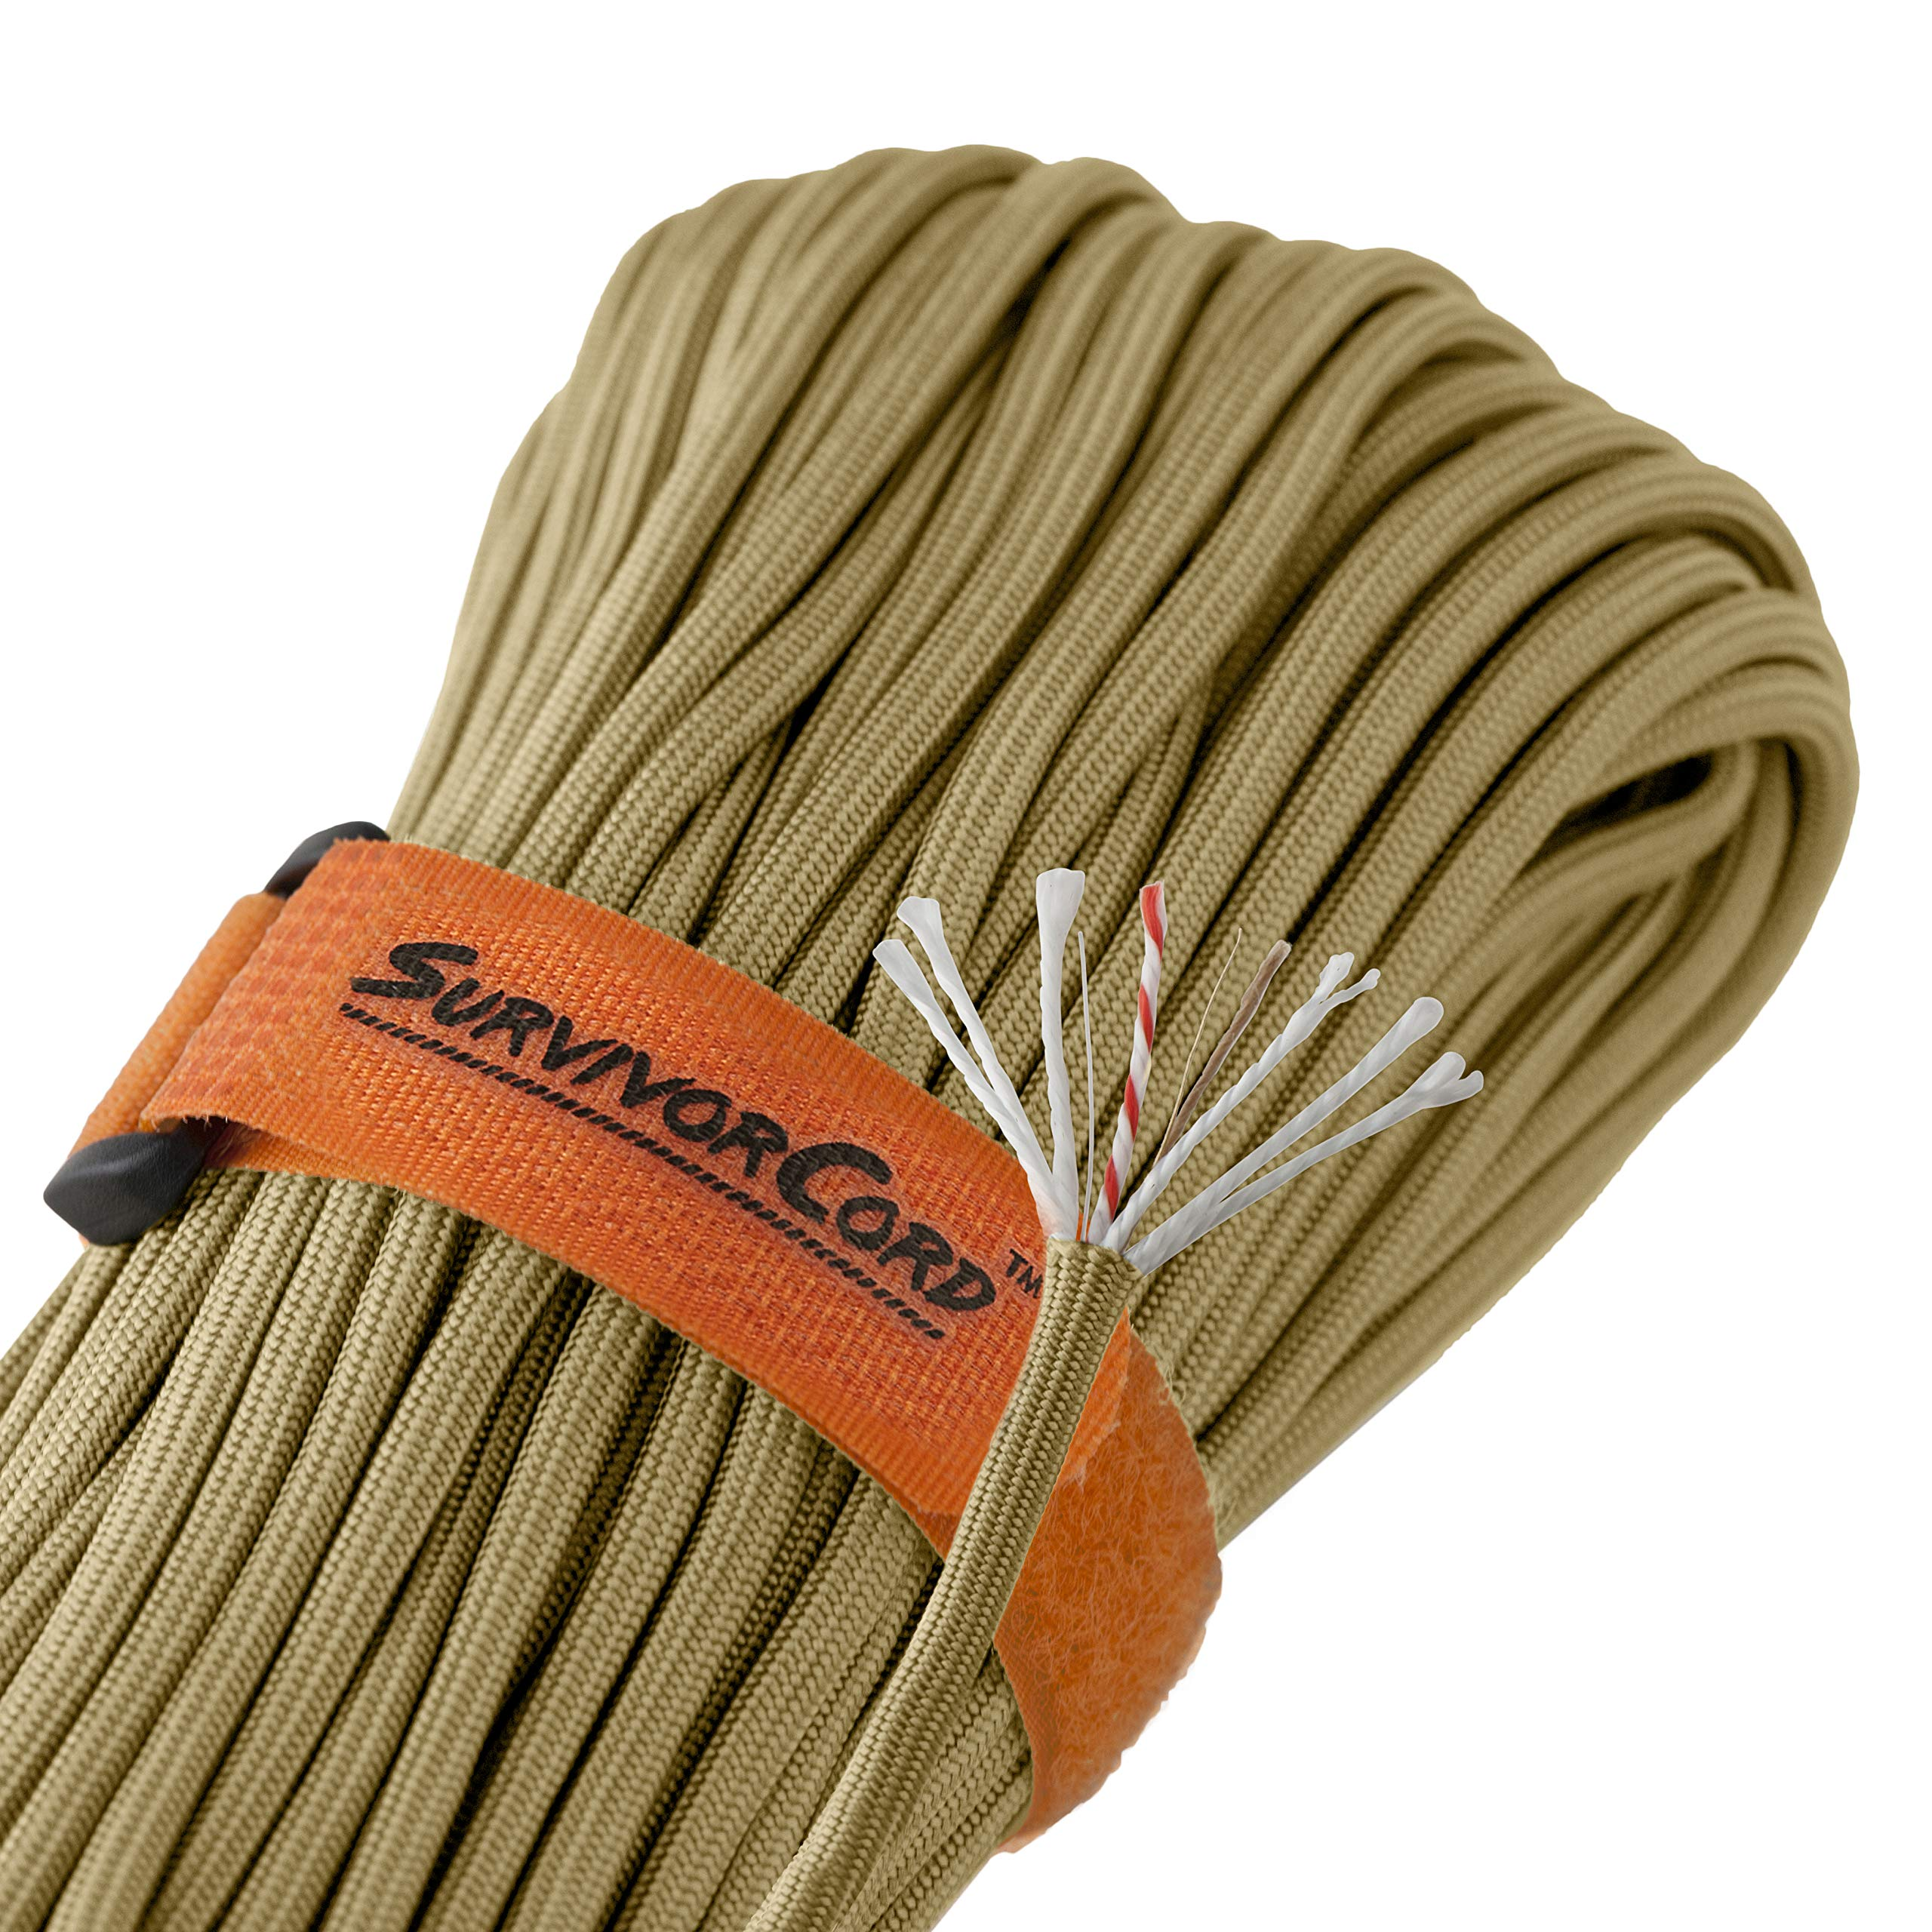 Titan SurvivorCord | Coyote Brown | 103 Feet | Patented Military Type III 550 Paracord/Parachute Cord (3/16'' Diameter) with Integrated Fishing Line, Fire-Starter, and Utility Wire.